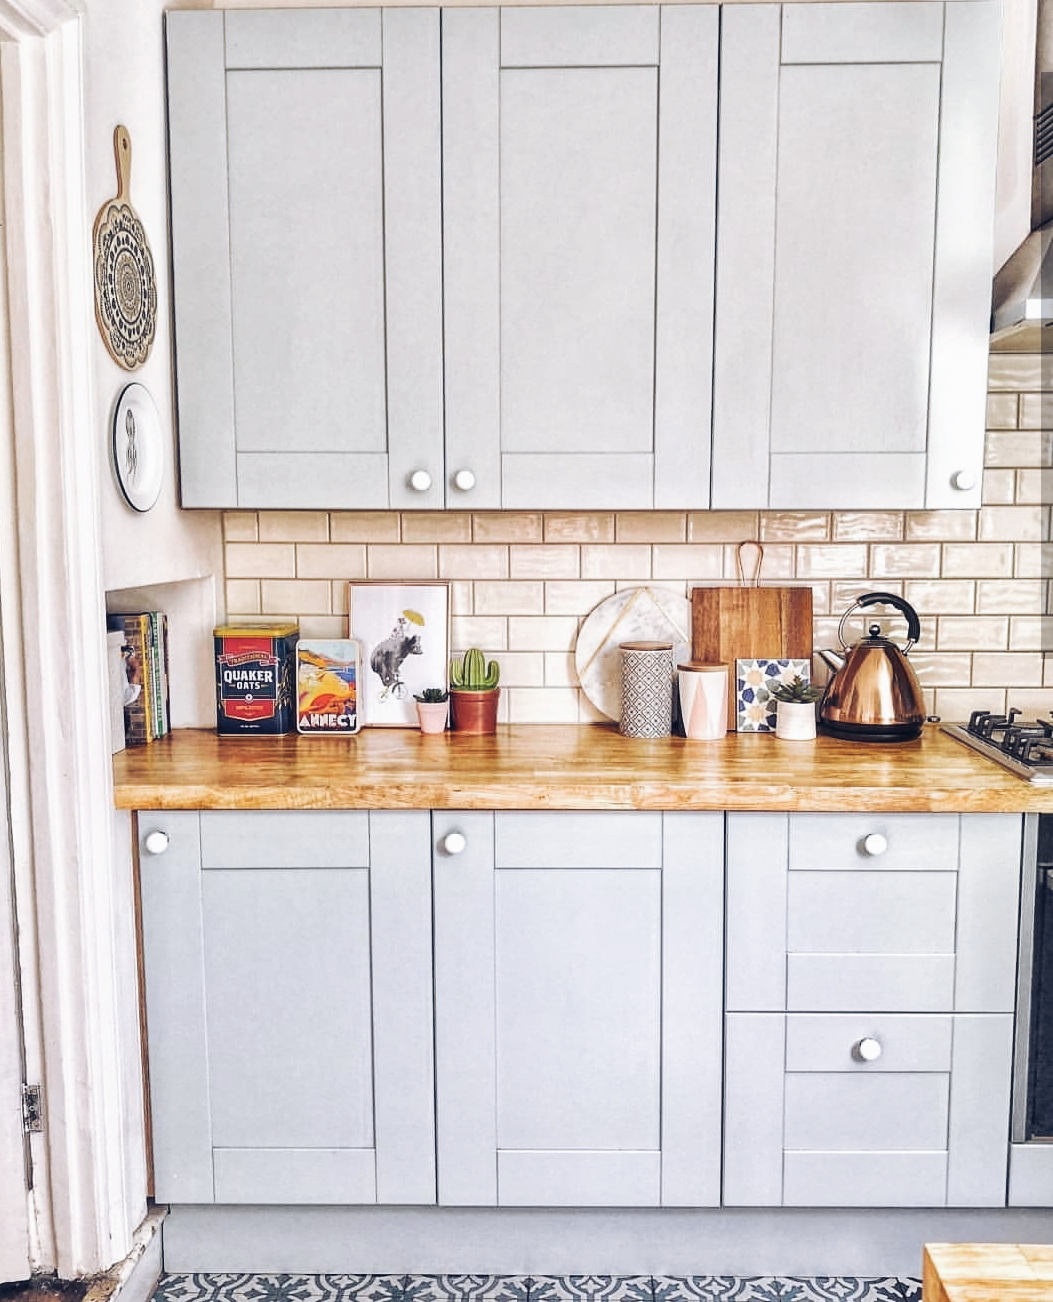 Vic's  kitchen with an eyecatching tiled floor